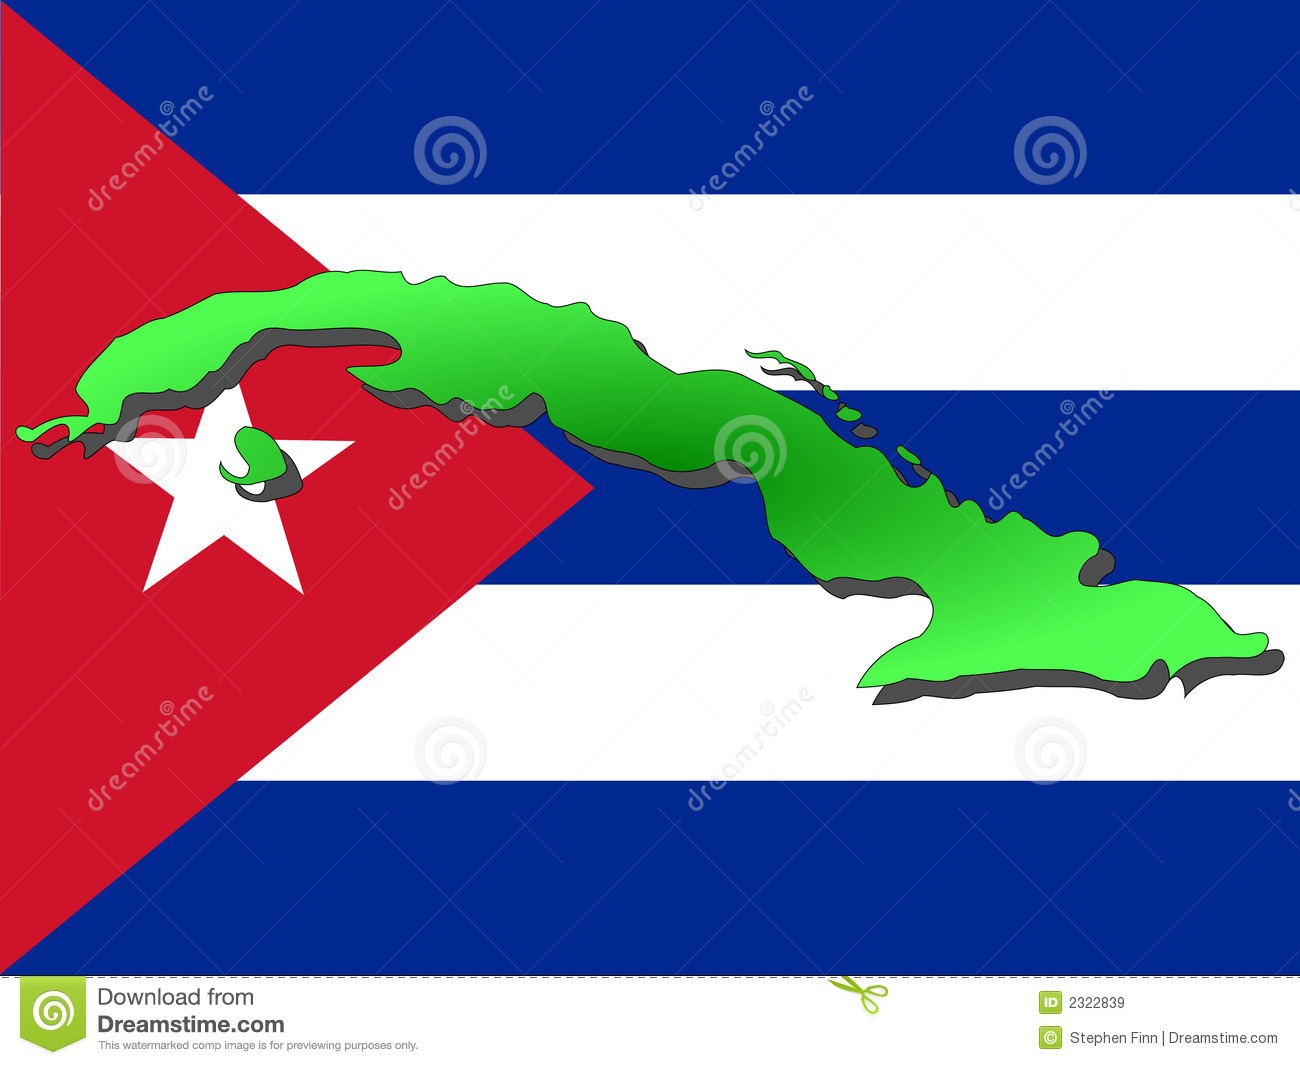 map of cuba royalty free stock images image 2322839 border collie clipart free border collie clipart for kids